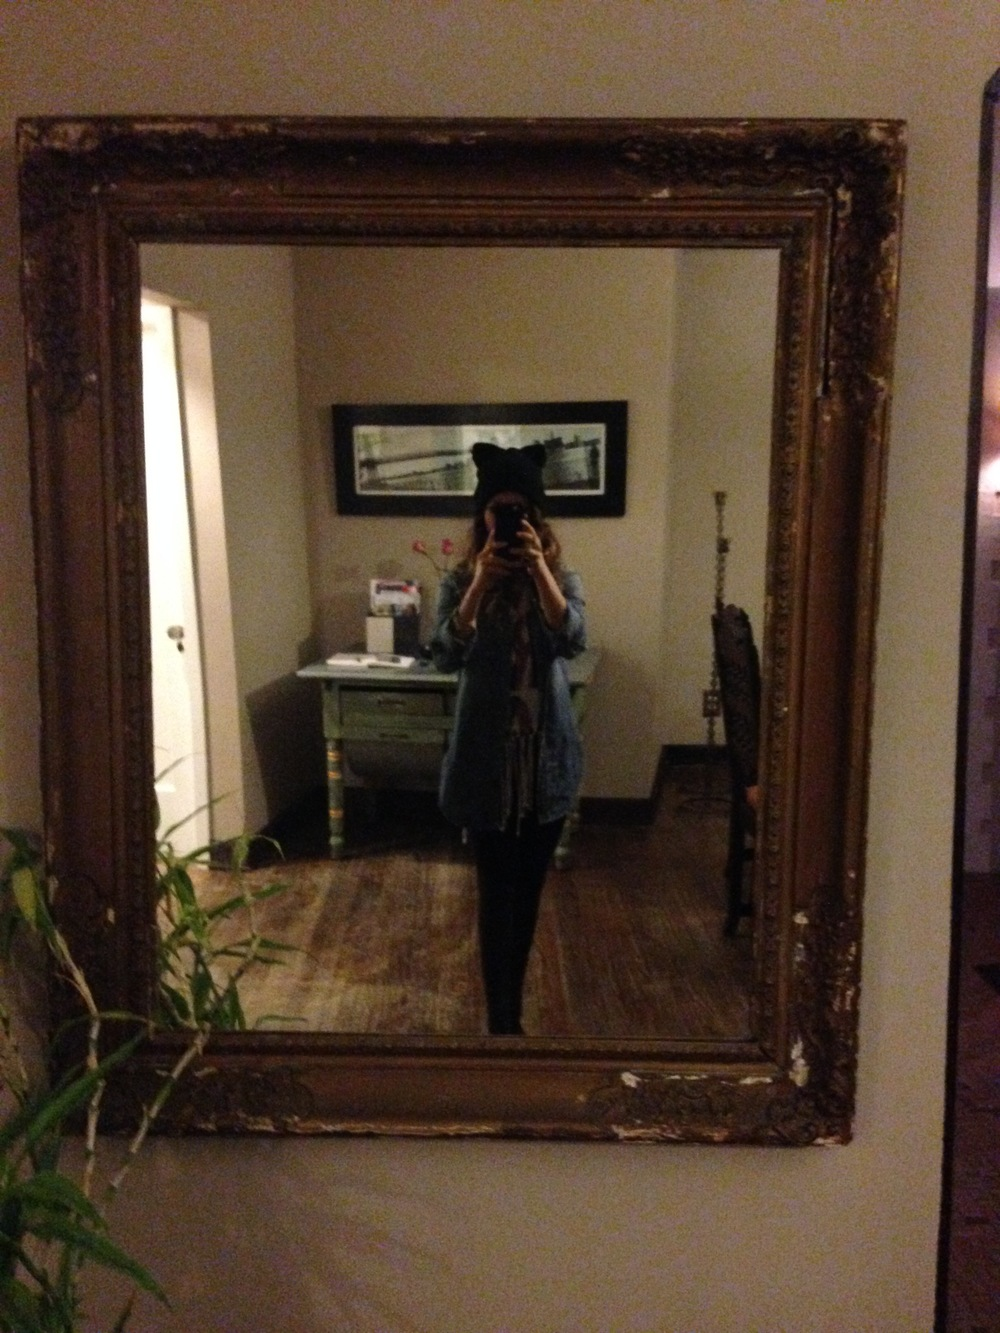 & cool mirrors!